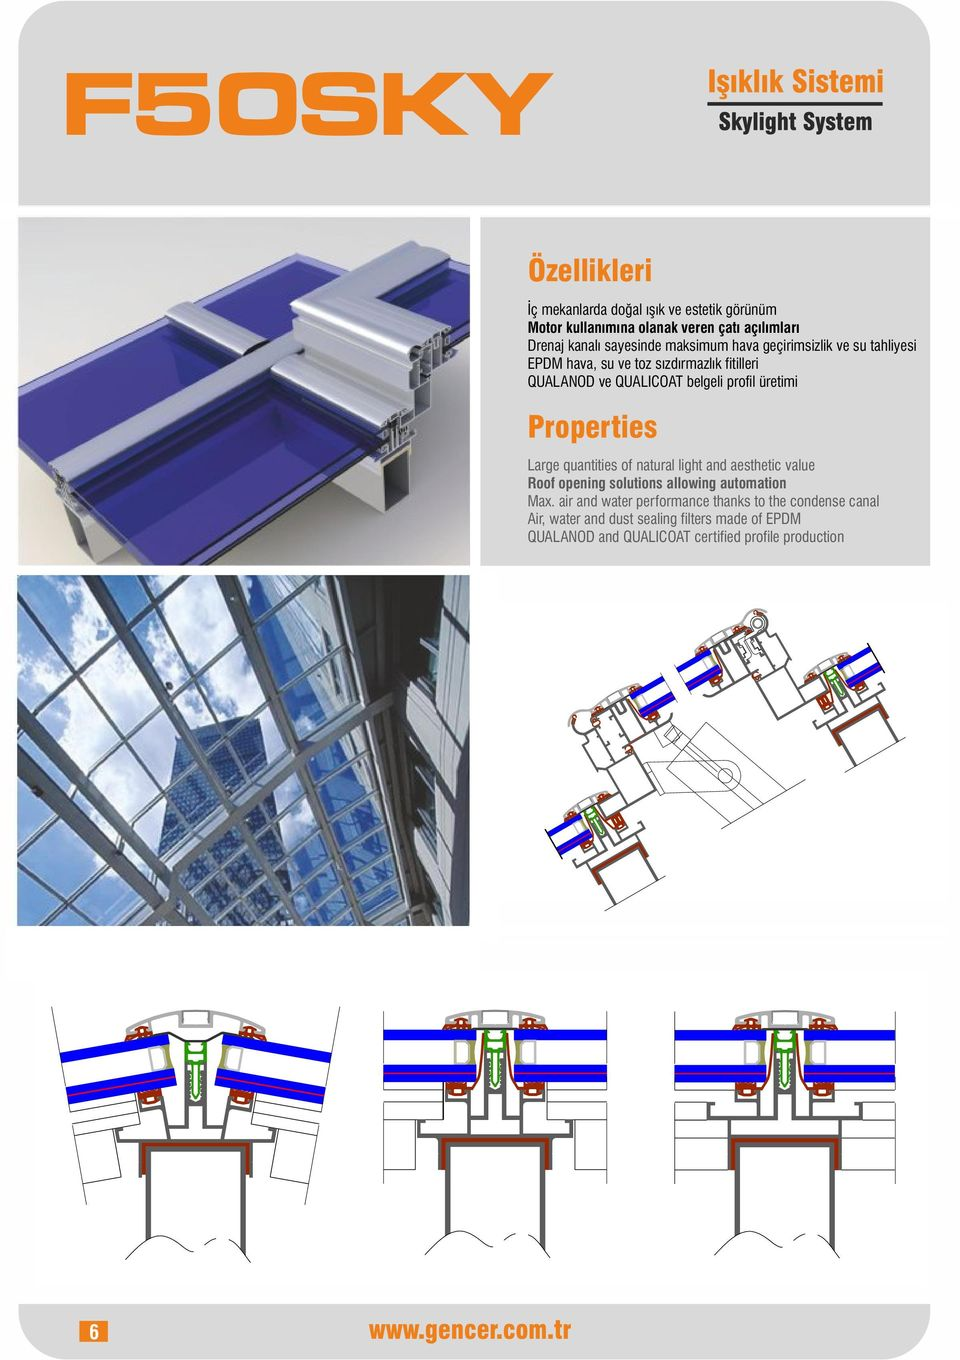 fitilleri Large quantities of natural light and aesthetic value Roof opening solutions allowing